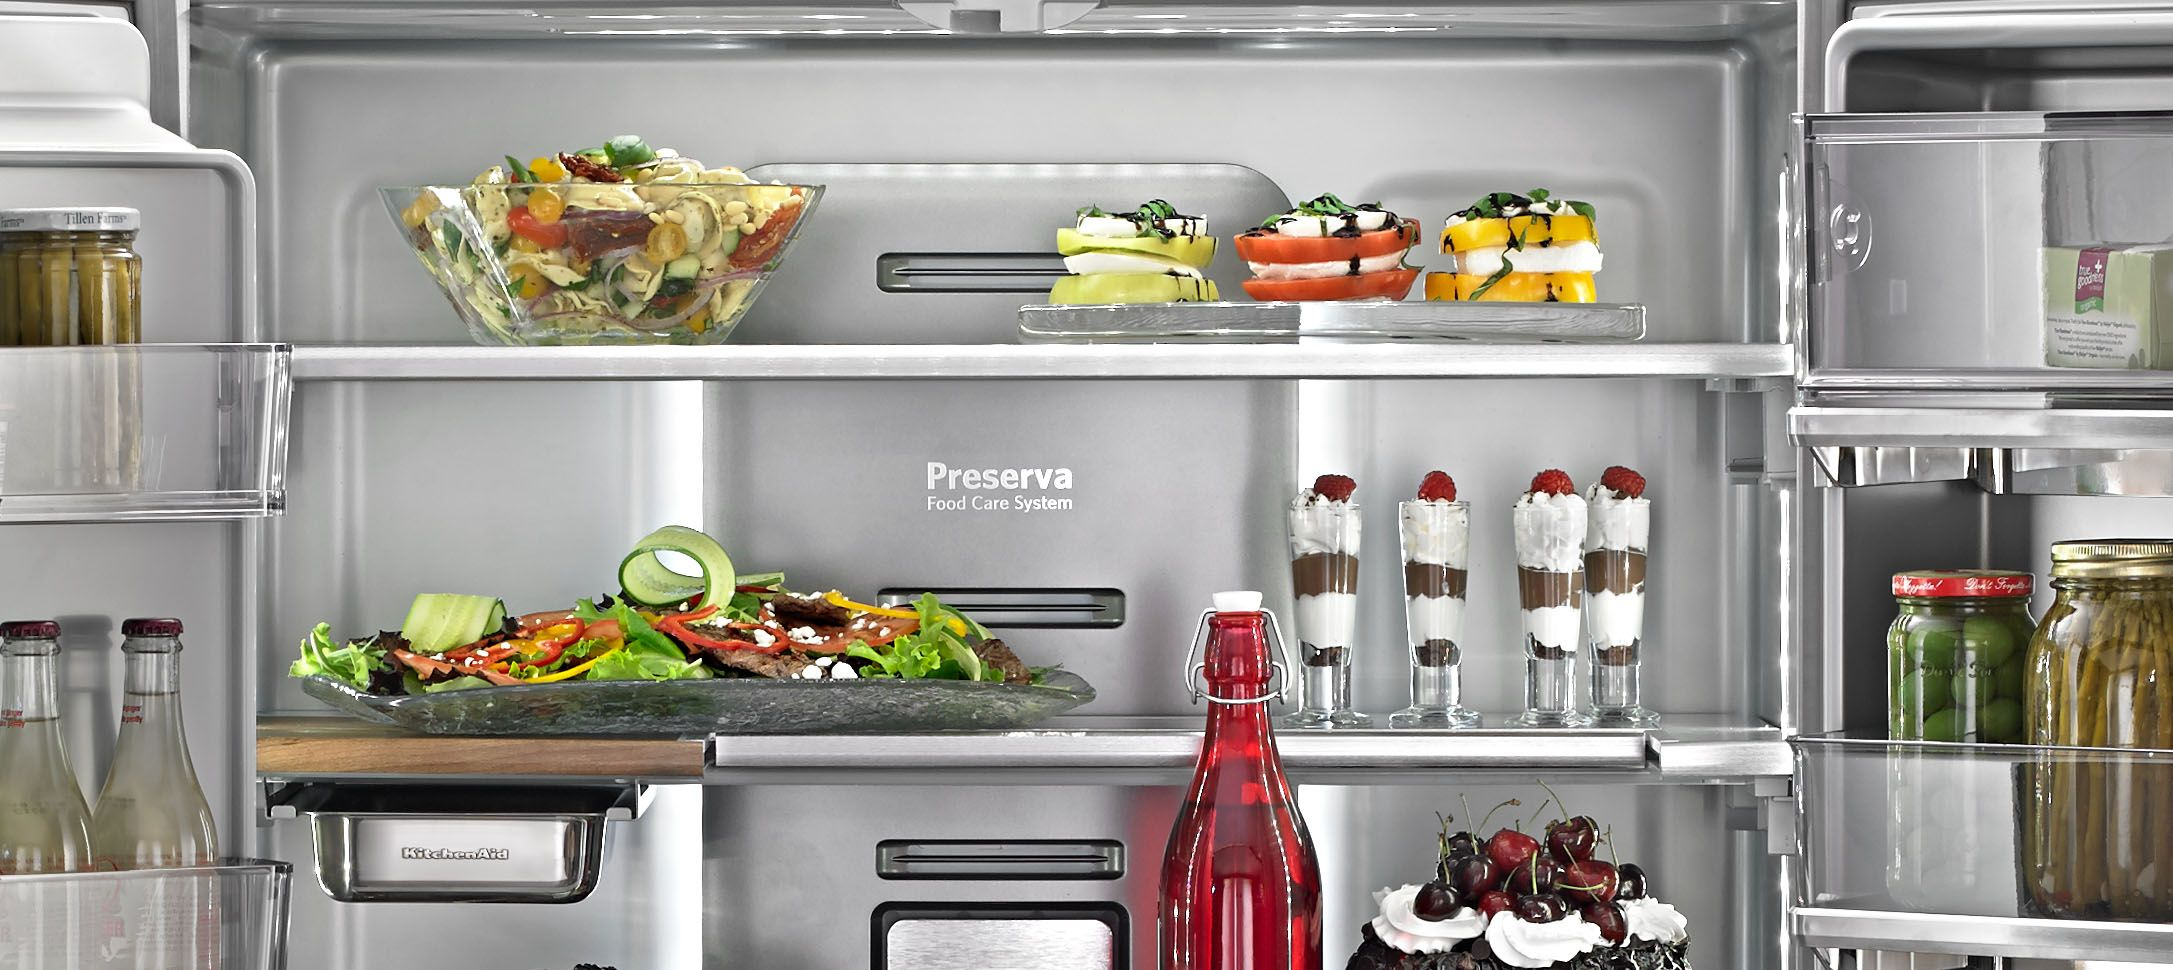 Inside of KitchenAid Refrigerator. Water, strawberries, salad and cake each in their own container.